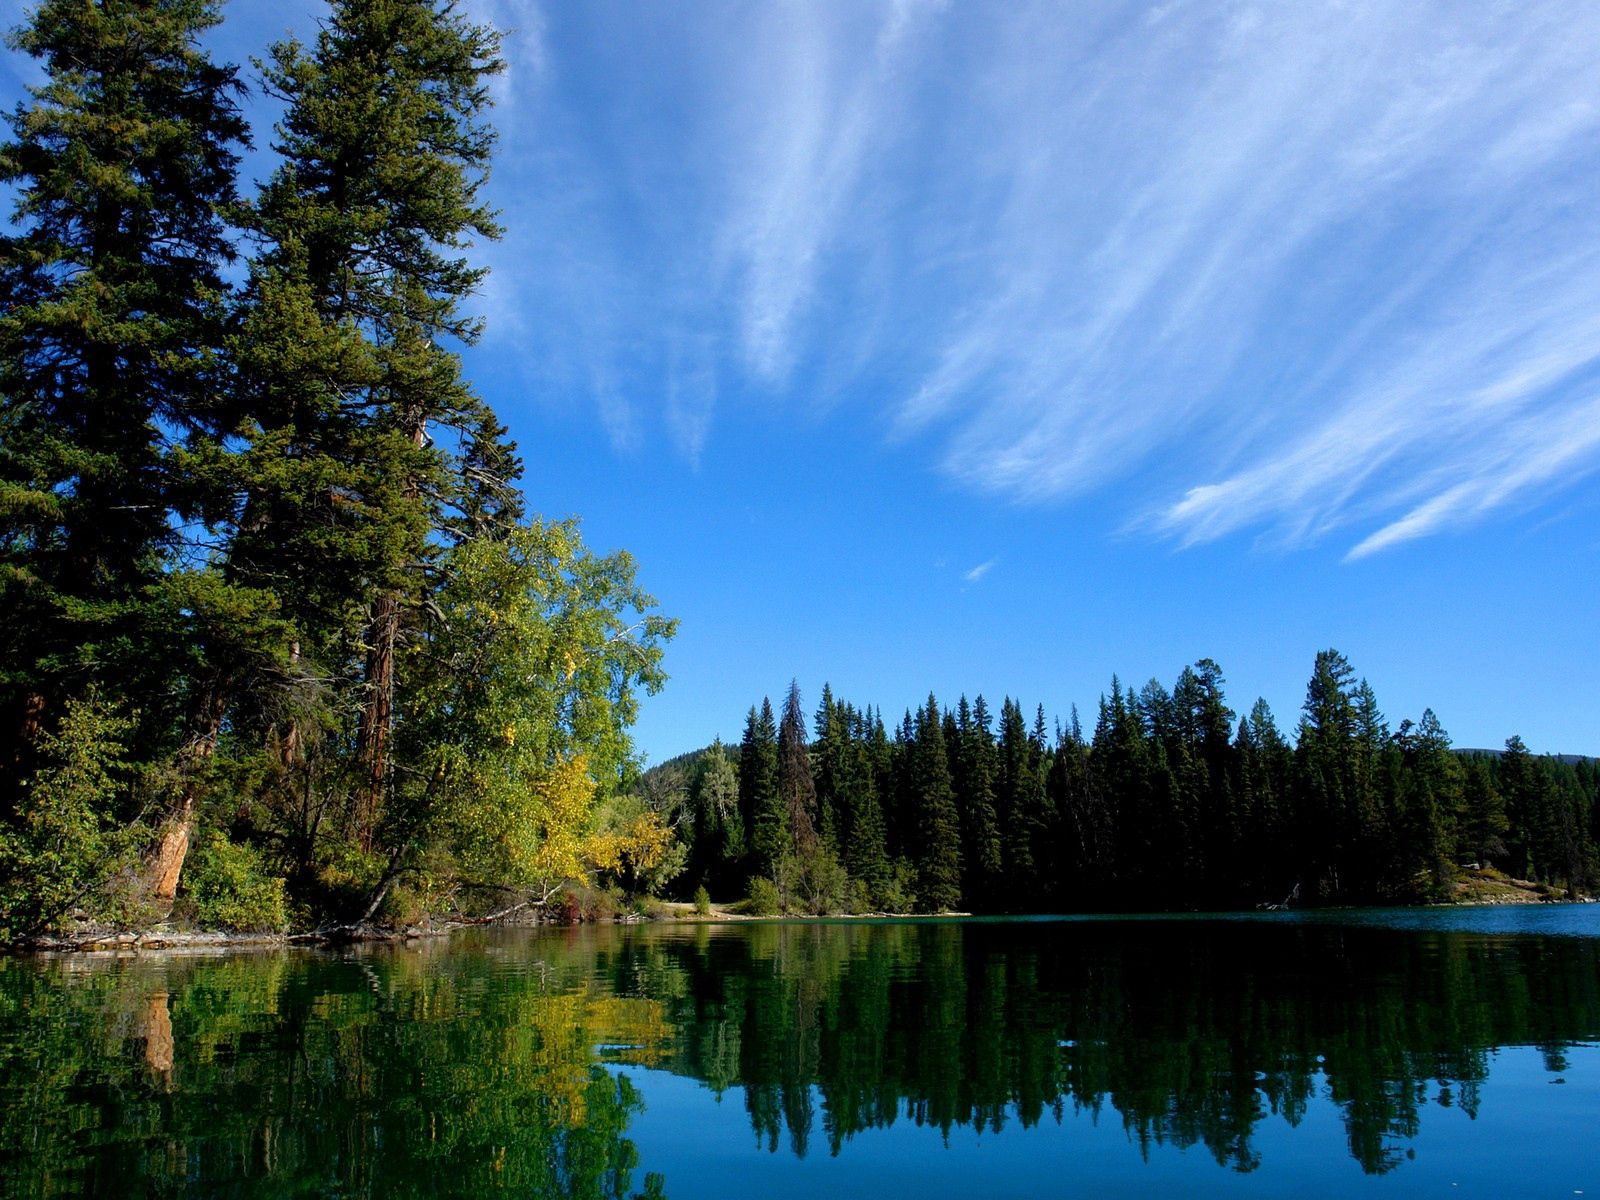 127222 free wallpaper 240x320 for phone, download images Nature, Sky, Lake, Forest 240x320 for mobile